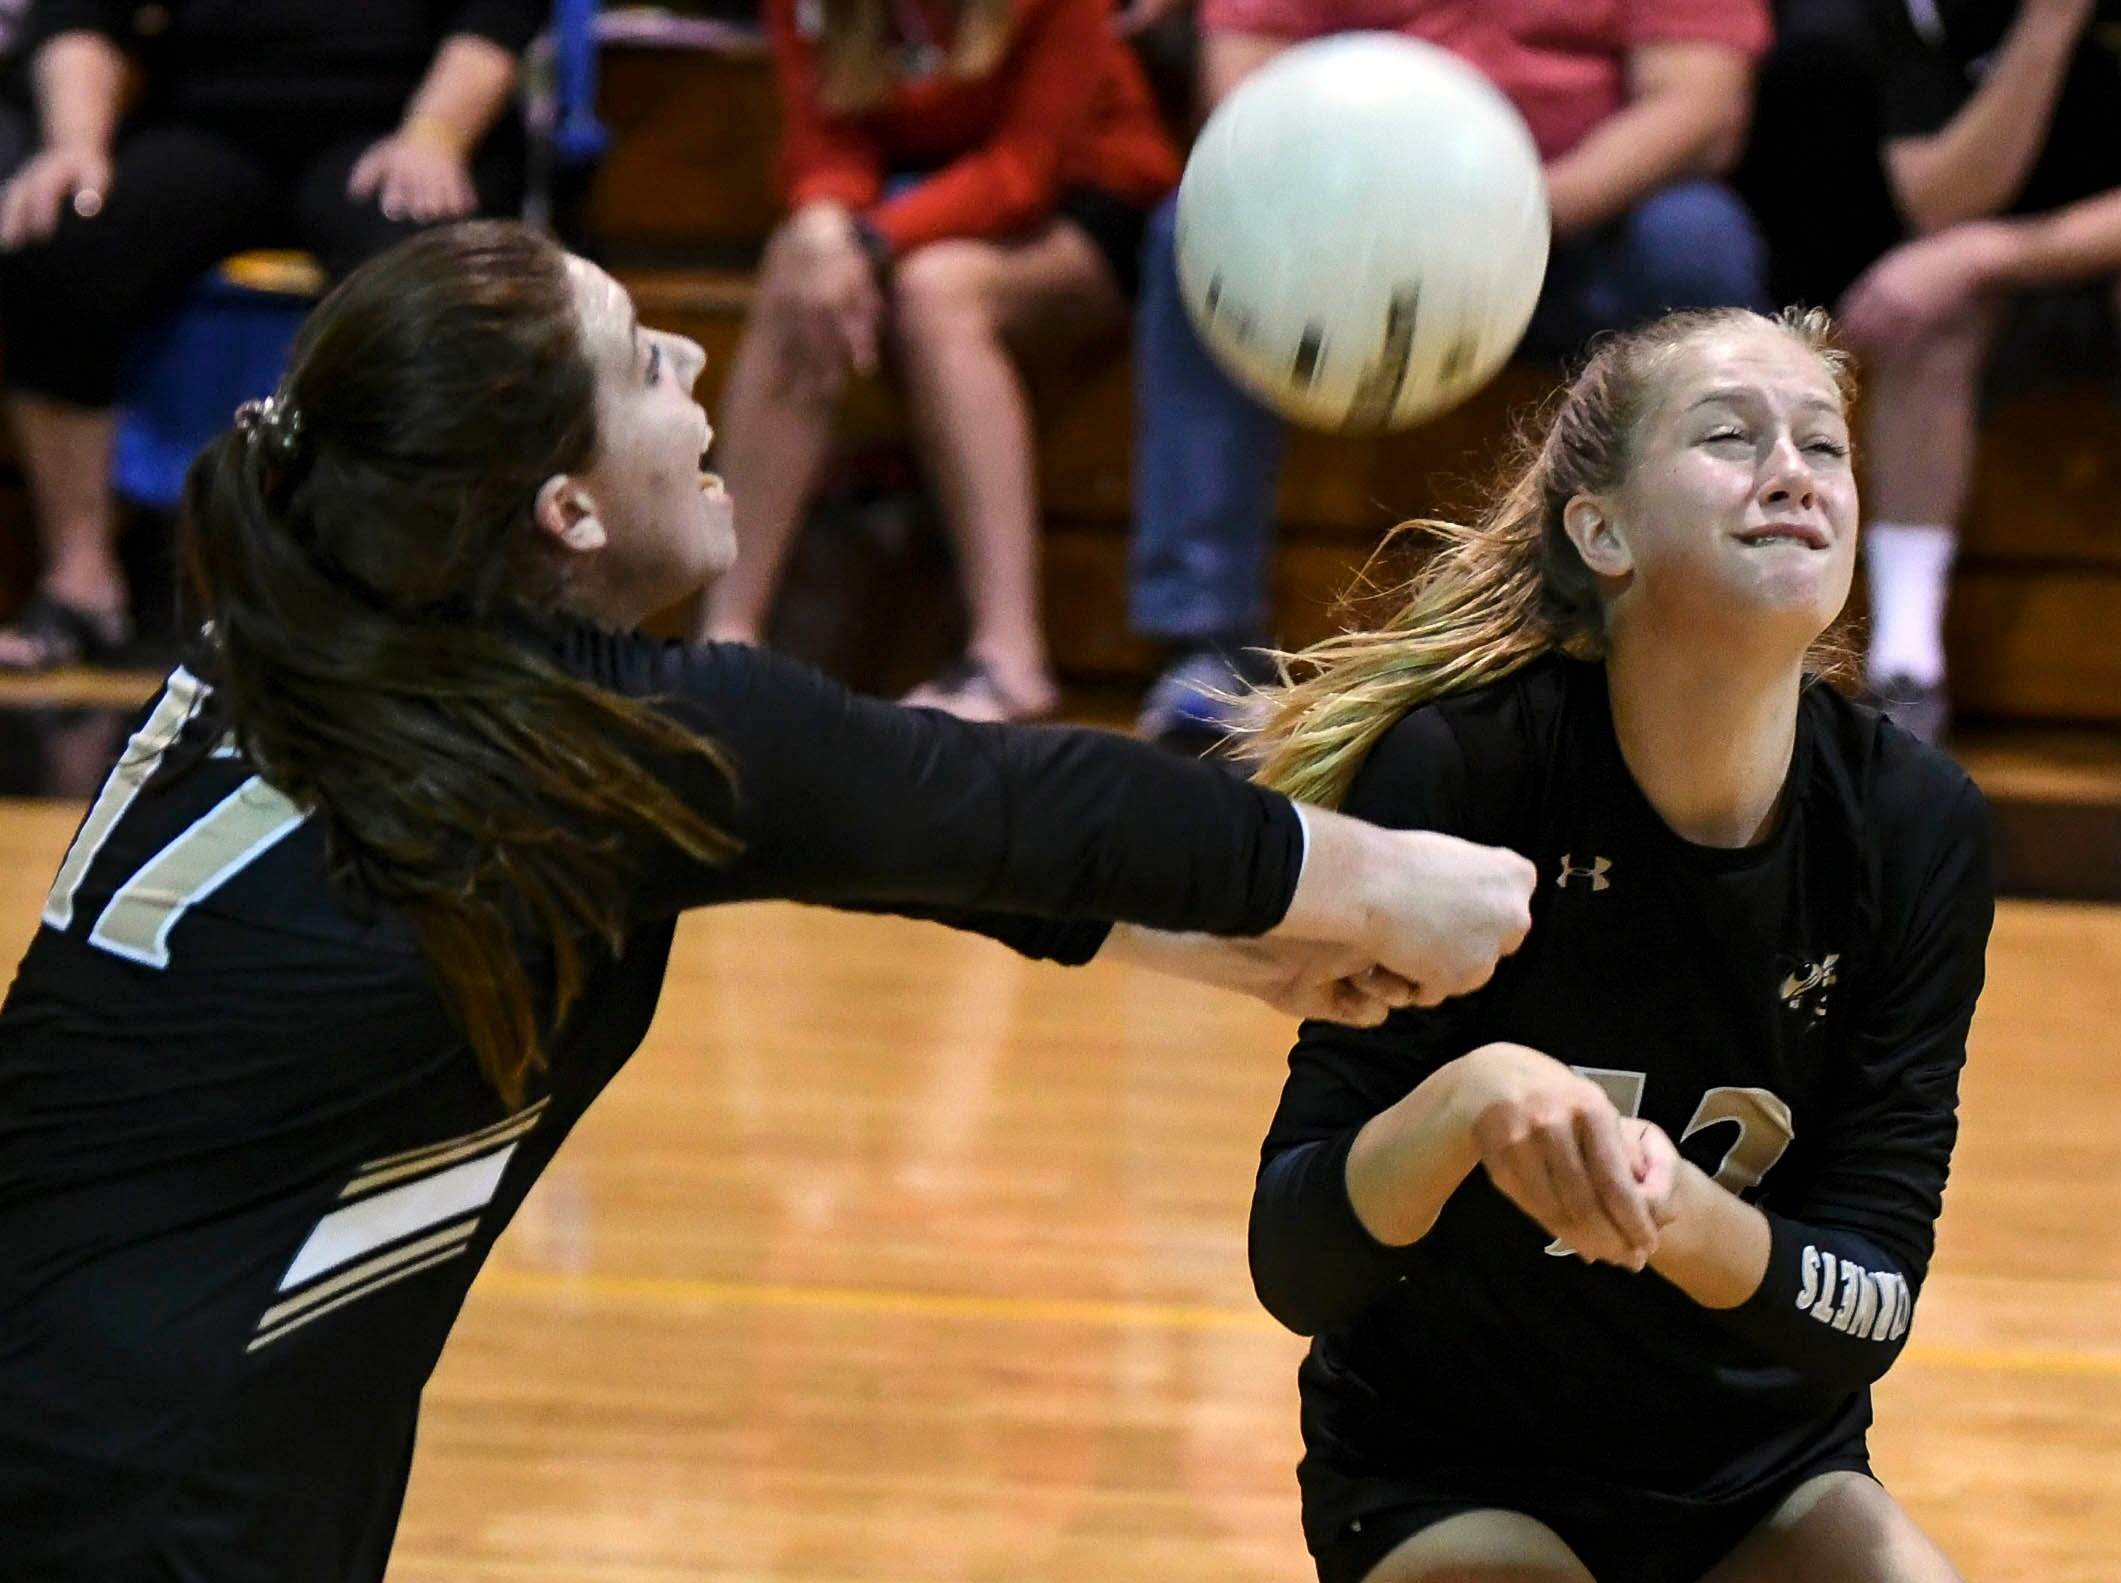 Two Bishop Moore players go for the same ball during Tuesday volleyball regional semifinal.